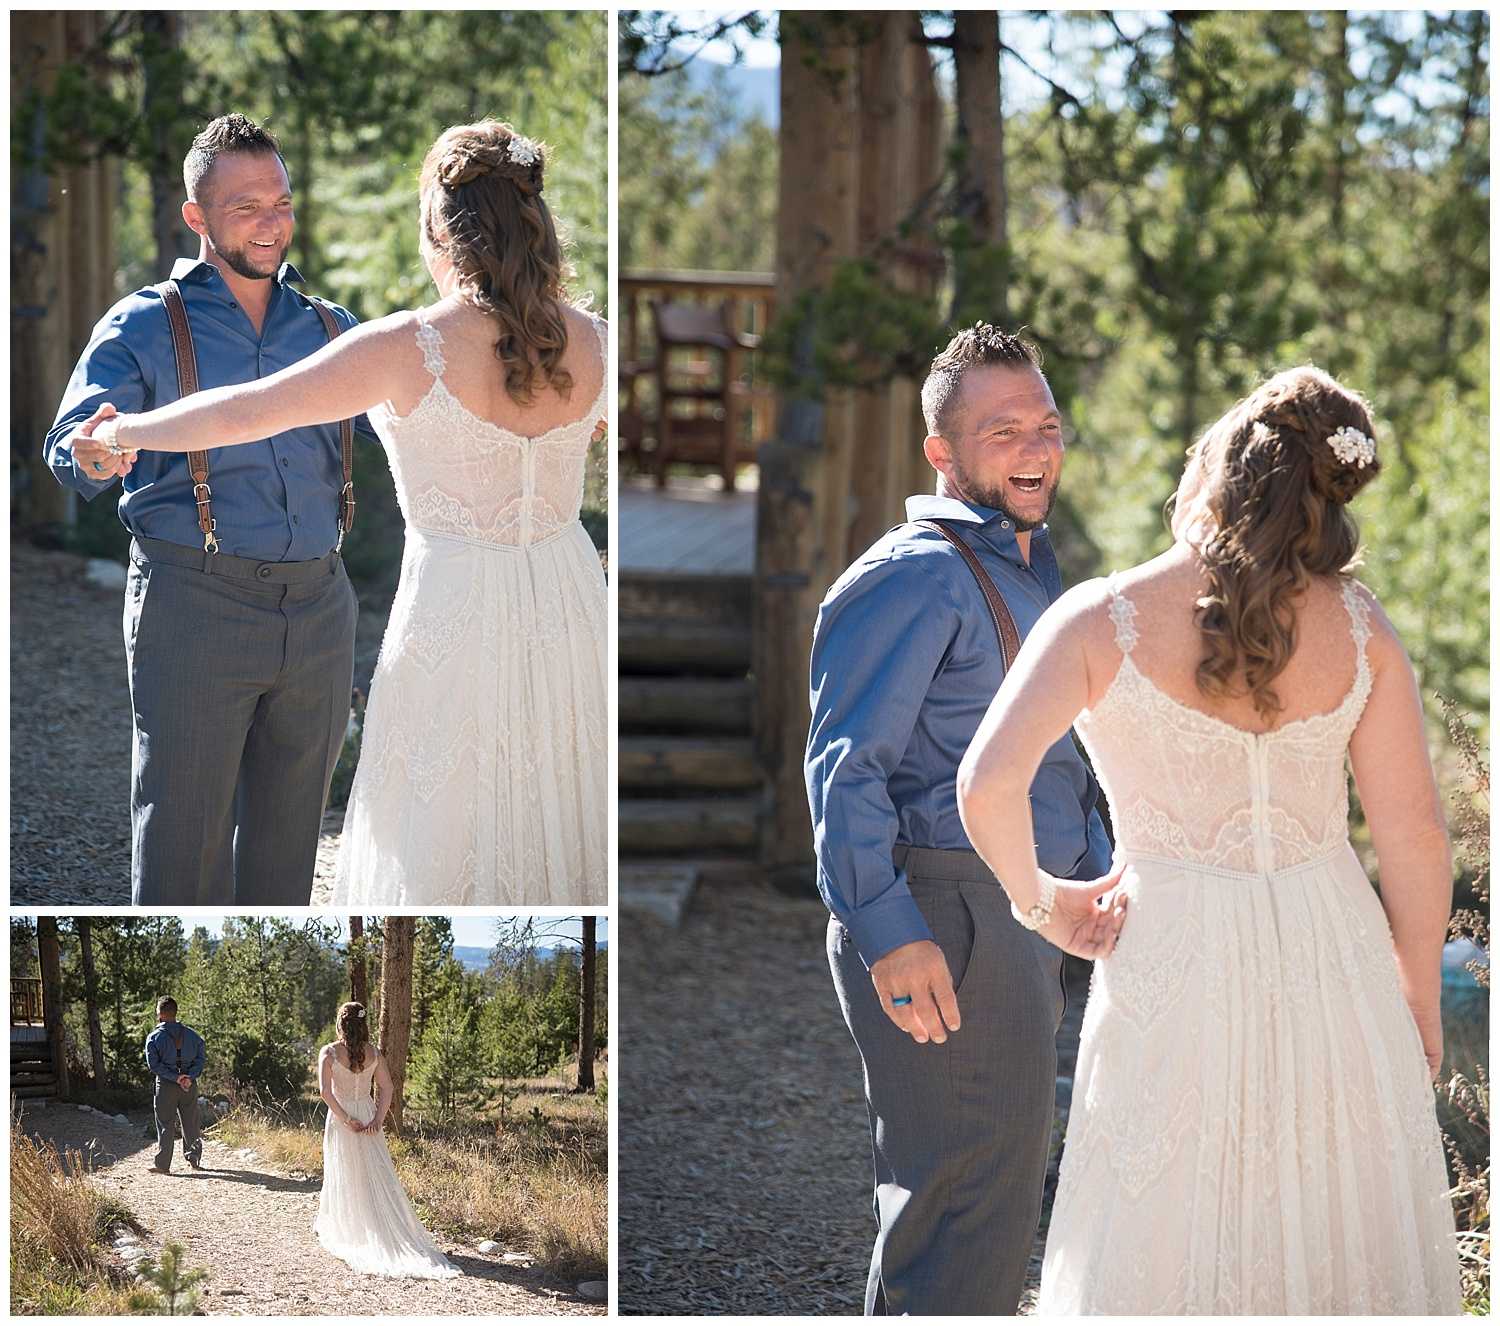 Man and Woman First Look | Carolyn and Shawn's Wild Horse Inn Wedding at Devil's Thumb Ranch | Fraser Colorado Photography | Farm Wedding Photographer | Apollo Fields Wedding Photojournalism